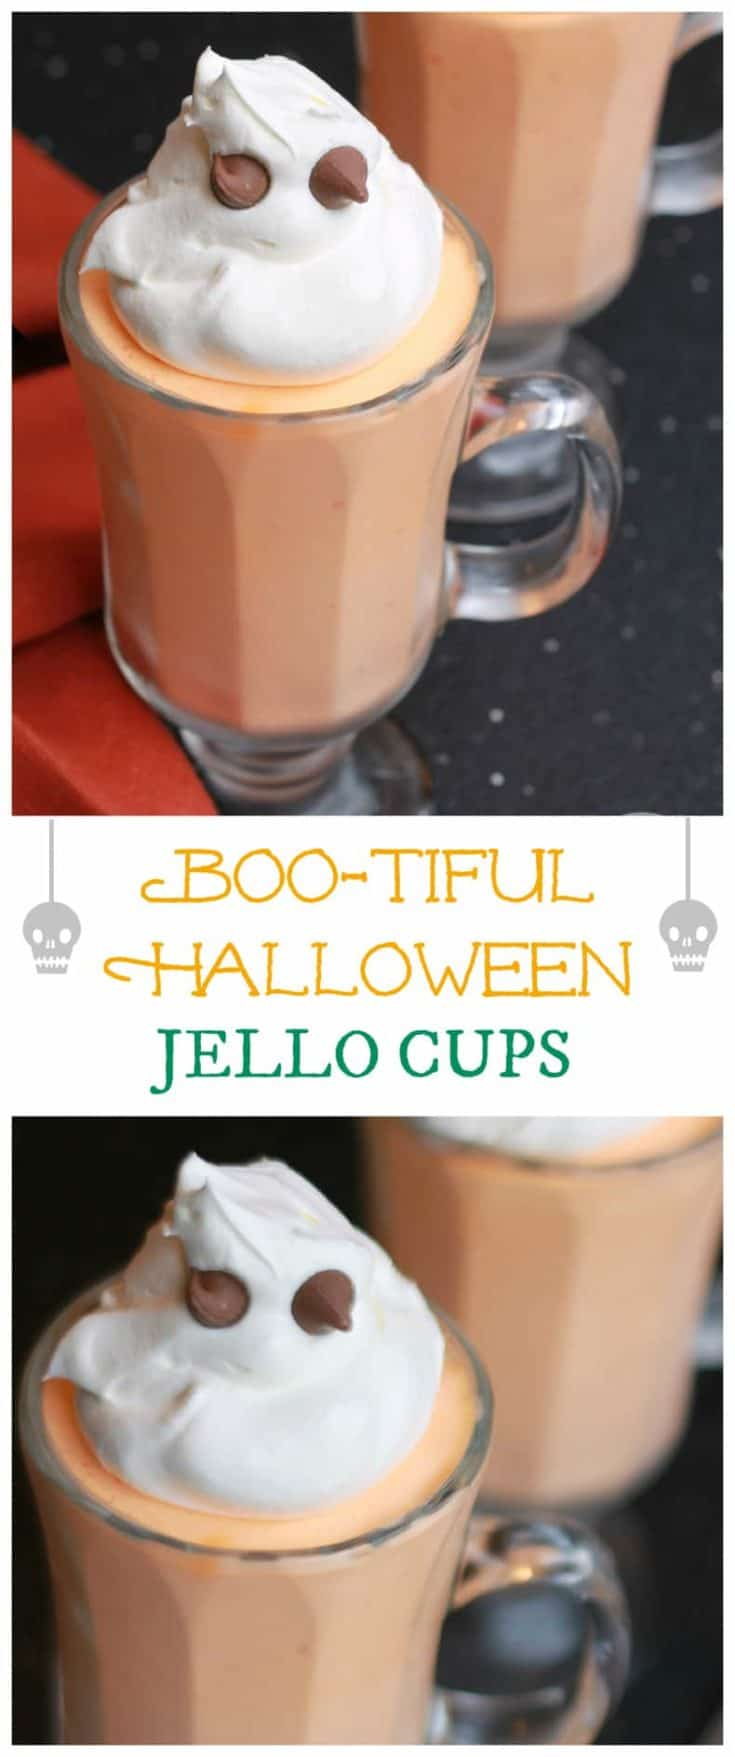 This Boo-tiful Halloween JELLO Cups recipe is so very simple to make, with a cute ghost theme. The perfect treat for a Halloween party #halloweentreat #halloween #jellocups